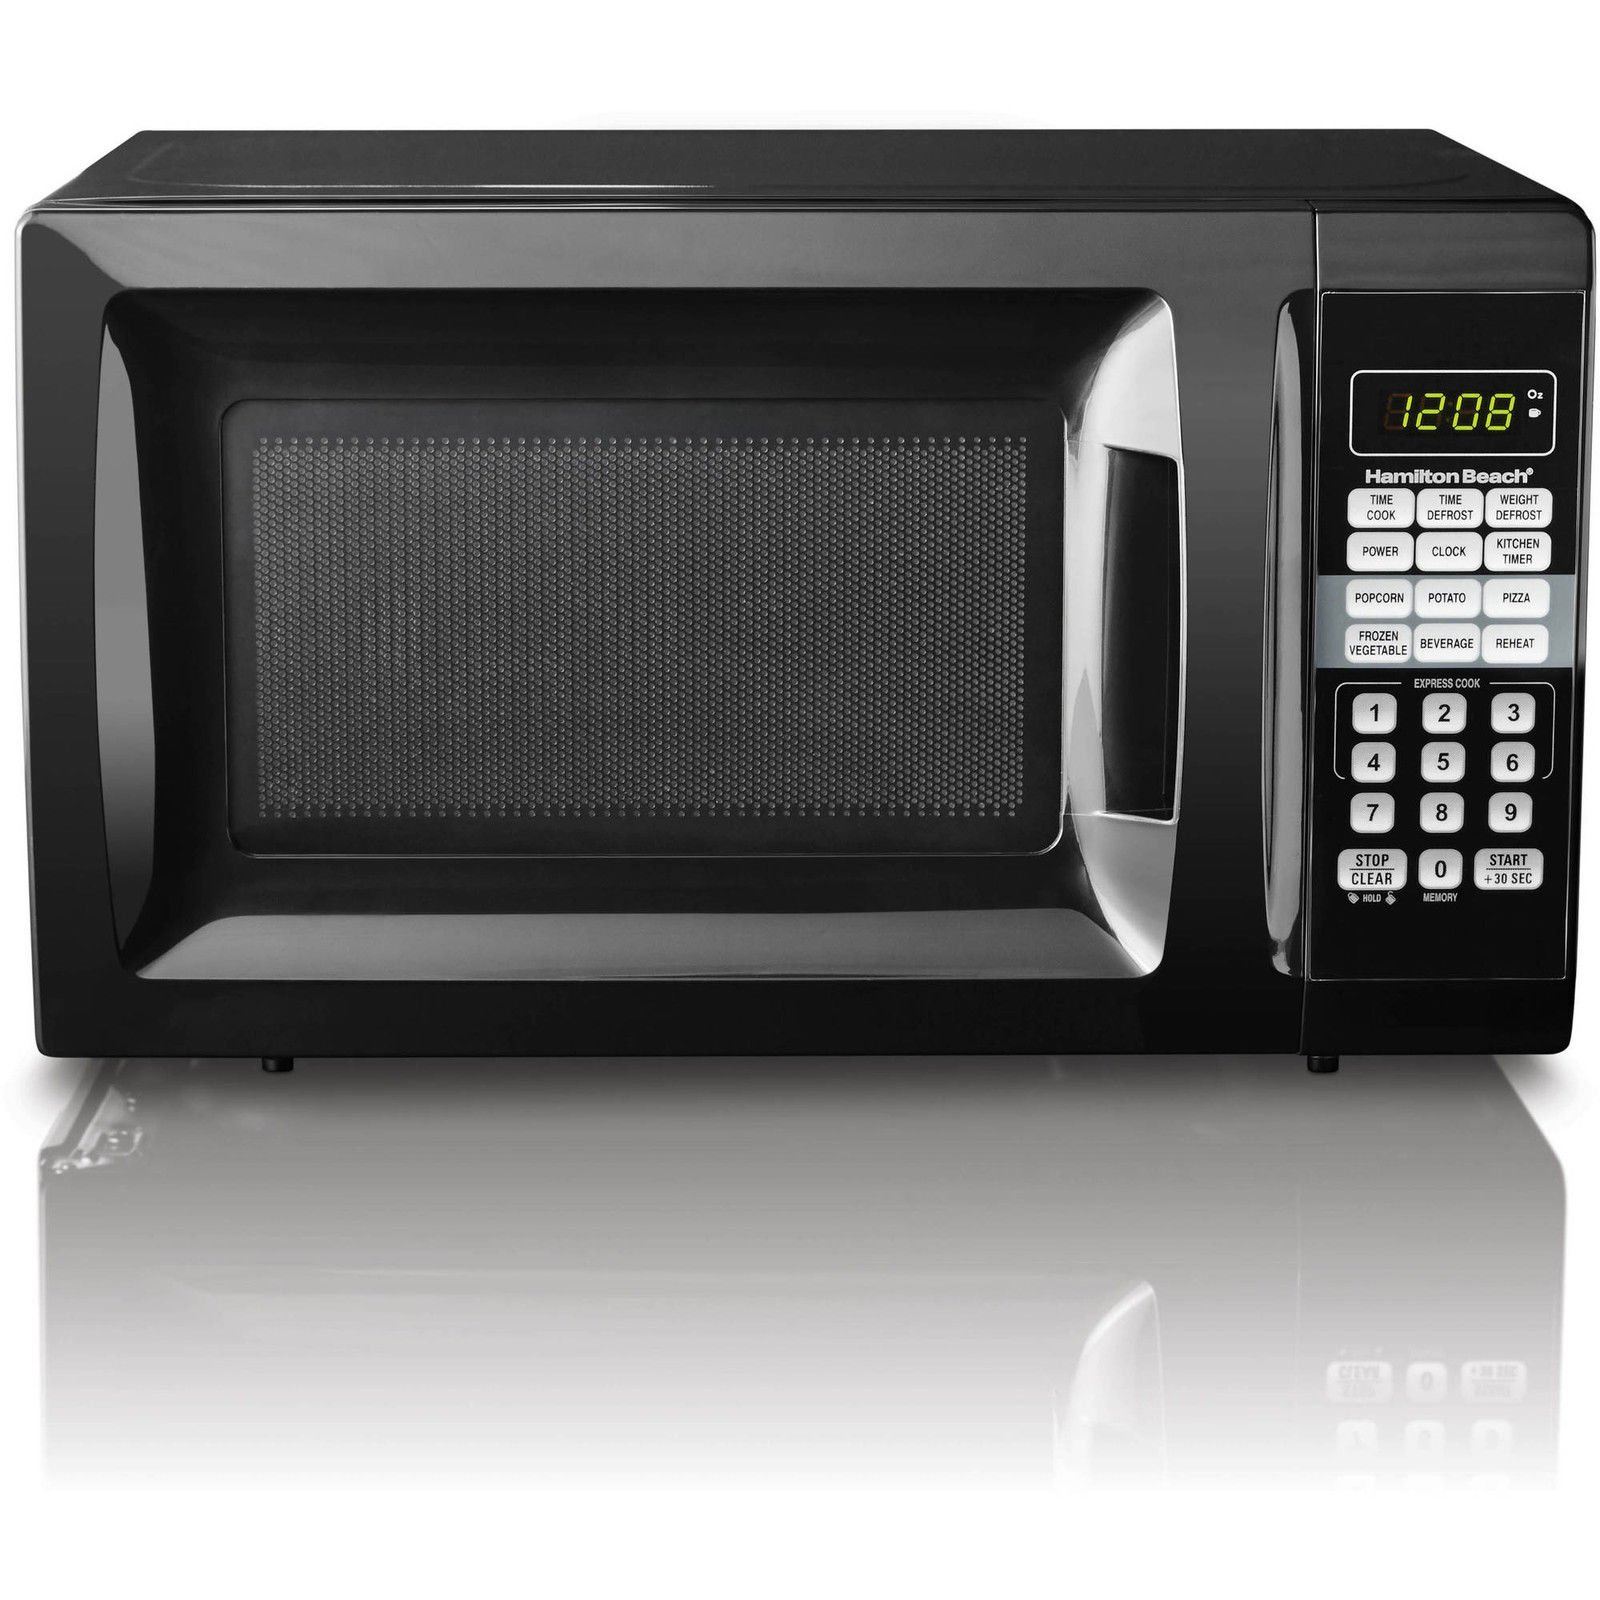 Microwave oven 0.7 CU FT 700W black Mainstays EM720CGAB express cooking Touch pad control (Certified Refurbished)